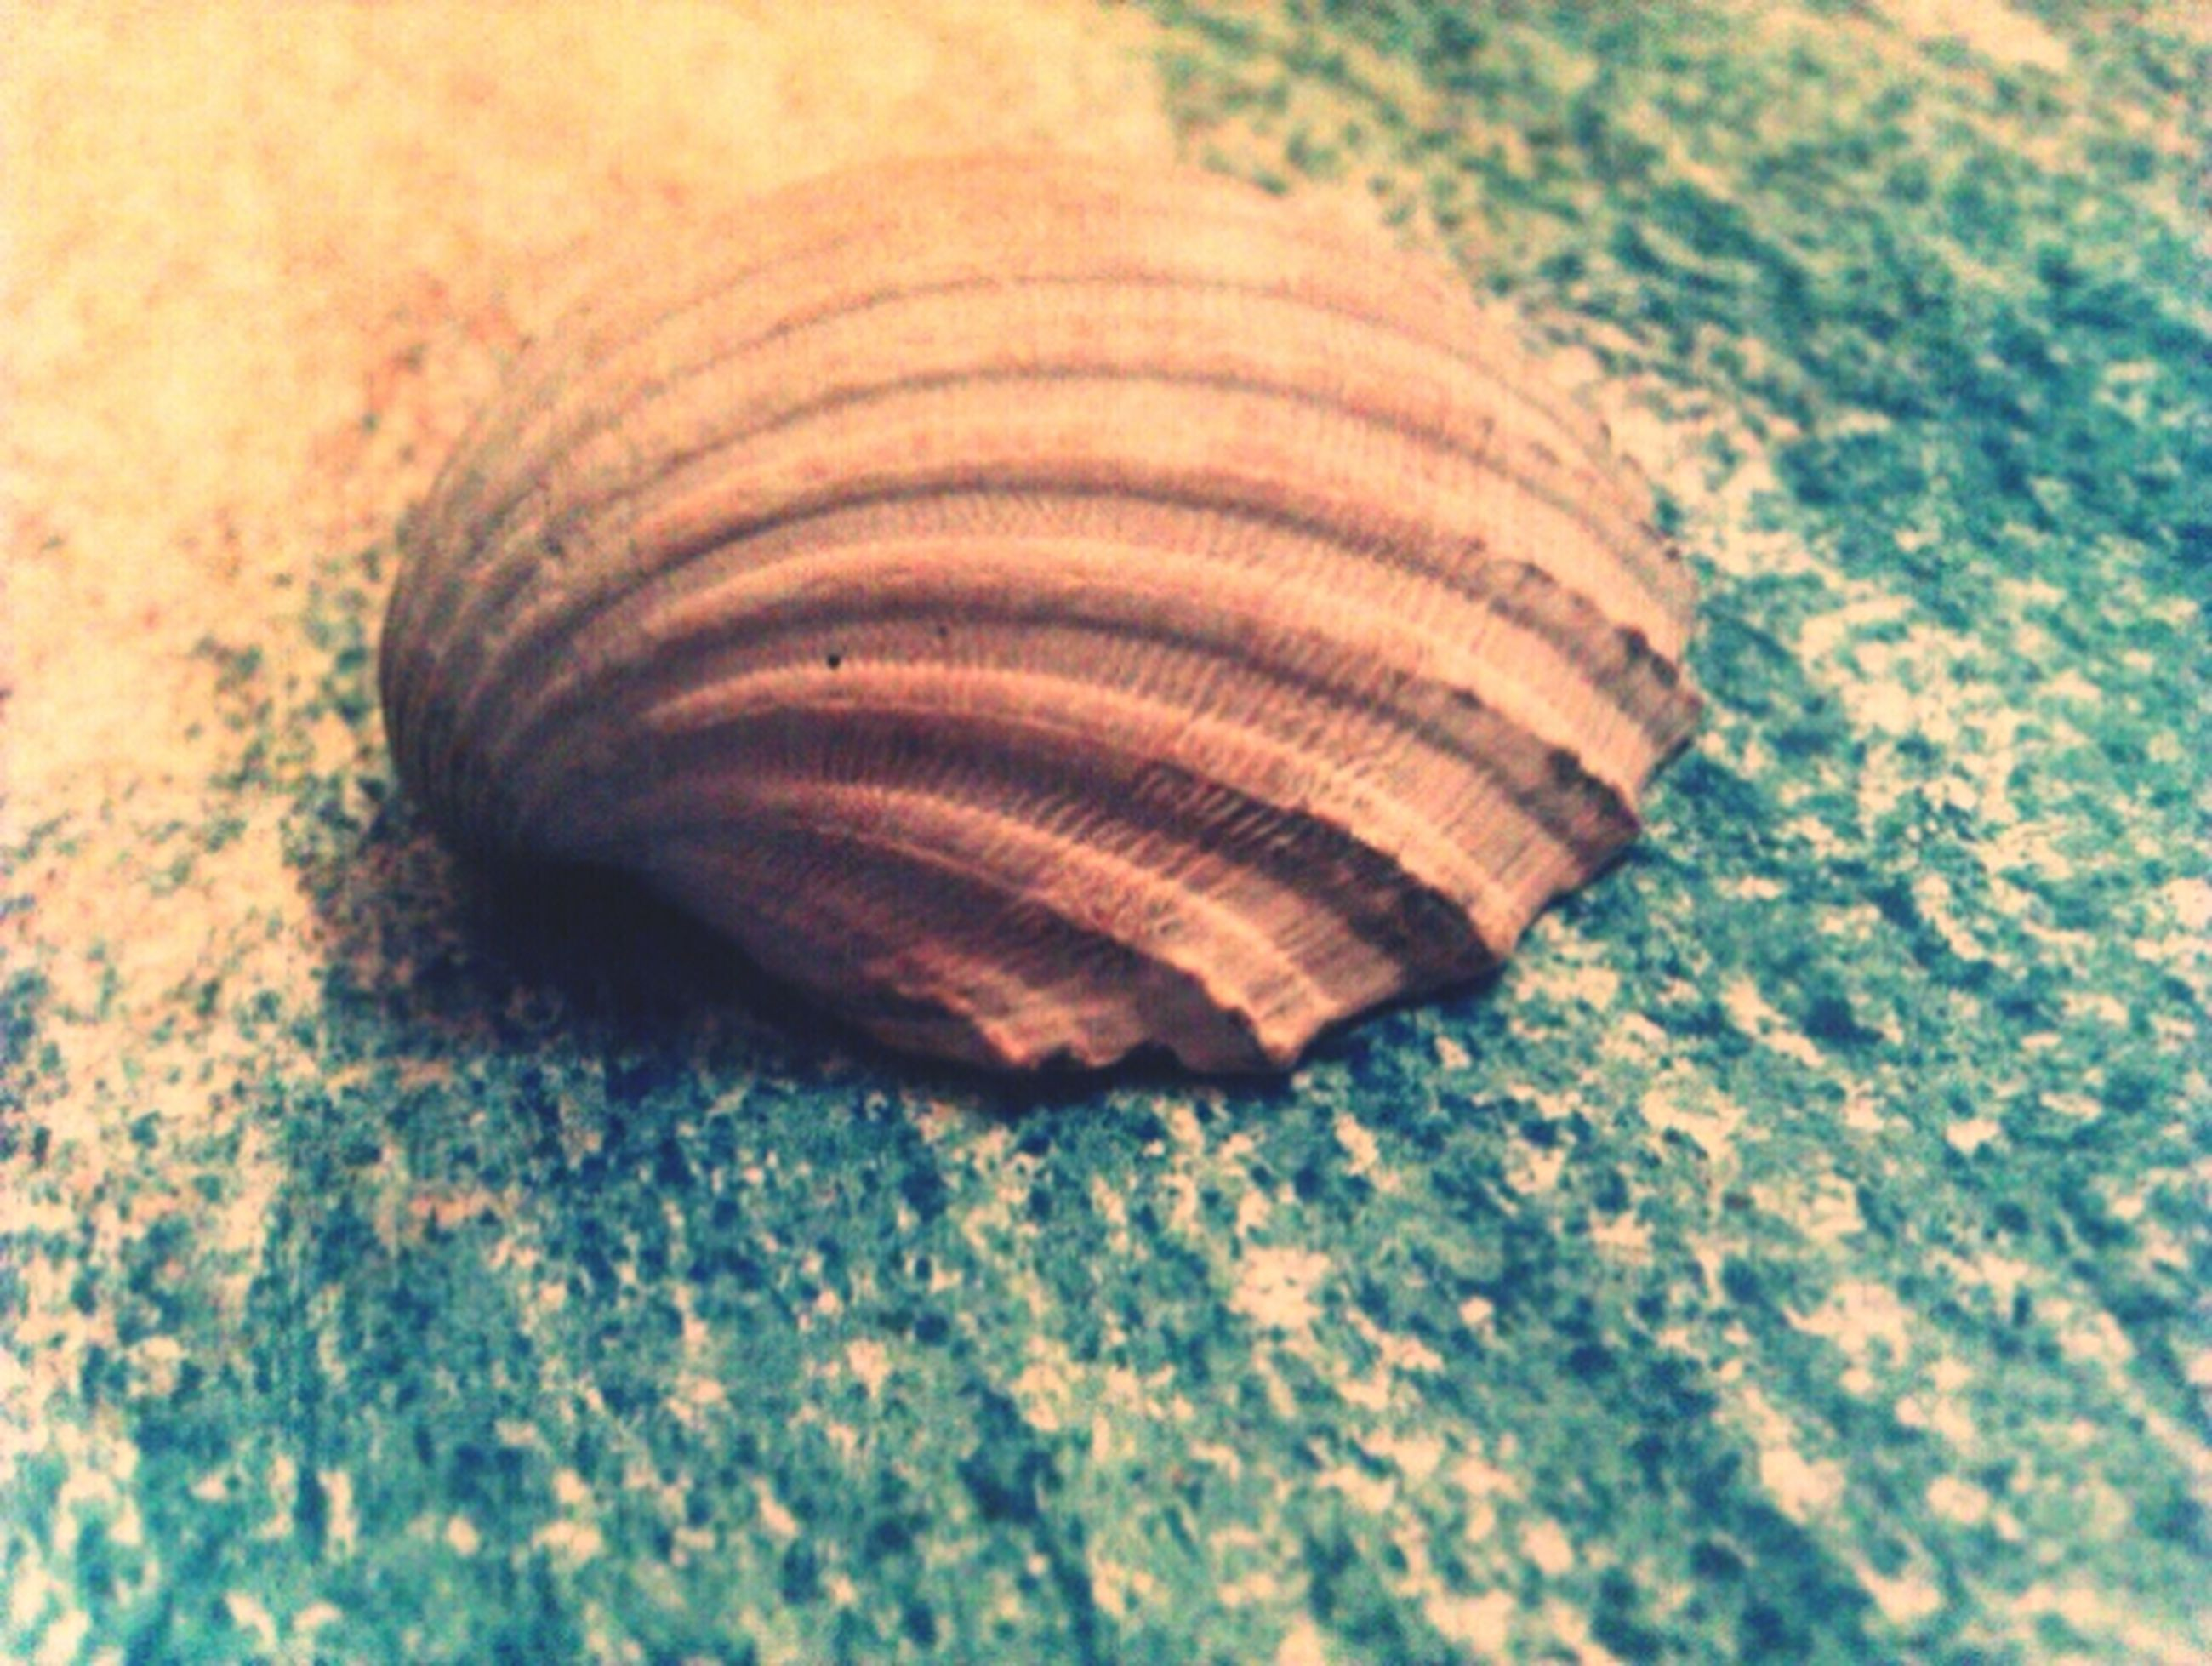 close-up, one animal, animal shell, animal themes, wildlife, animals in the wild, natural pattern, seashell, shell, pattern, single object, nature, selective focus, high angle view, snail, no people, focus on foreground, textured, outdoors, day